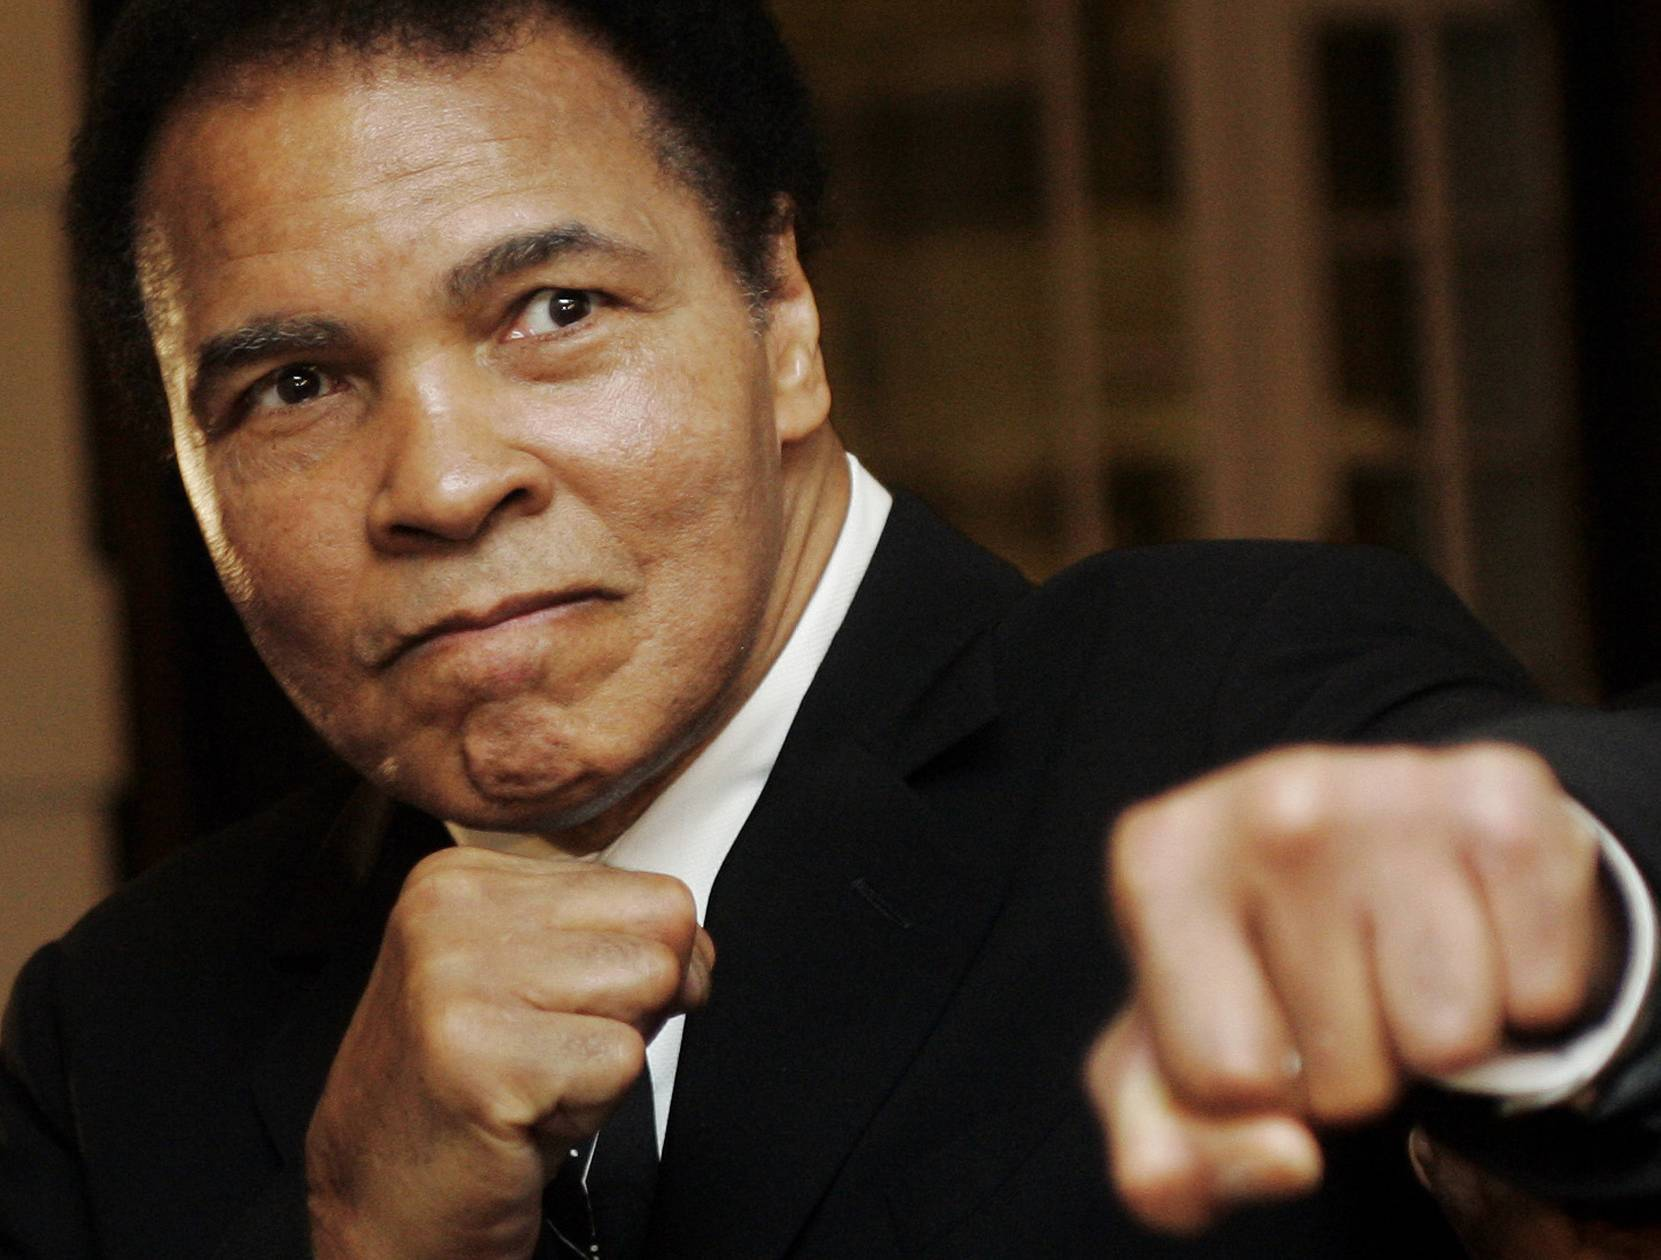 U.S. boxing great Muhammad Ali poses at the World Economic Forum in Davos